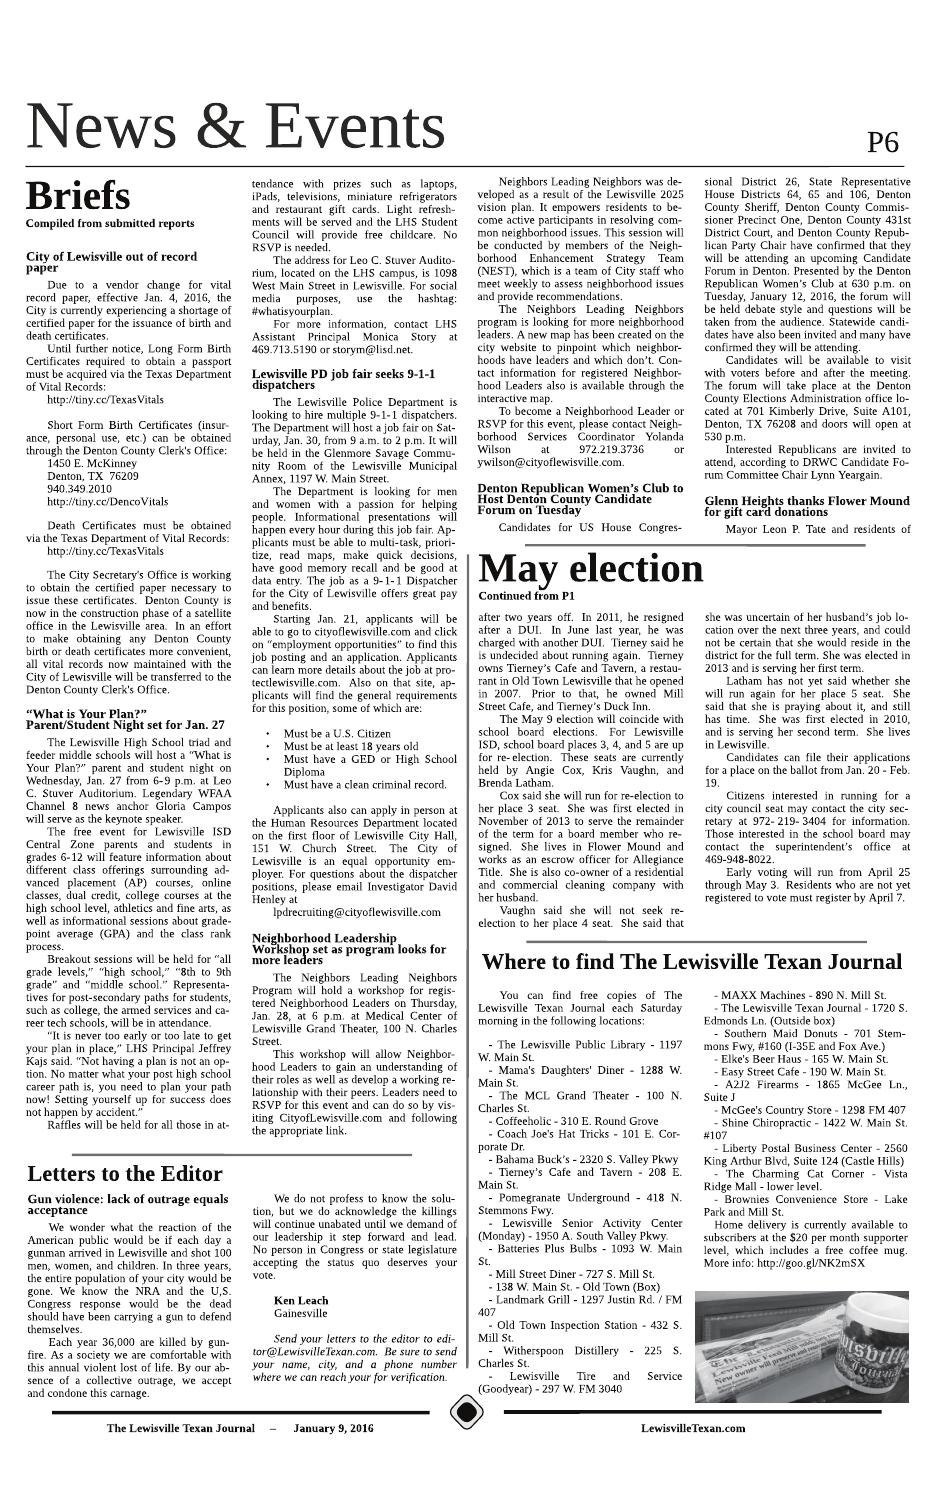 The Lewisville Texan Journal 01092016 By The Lewisville Texan